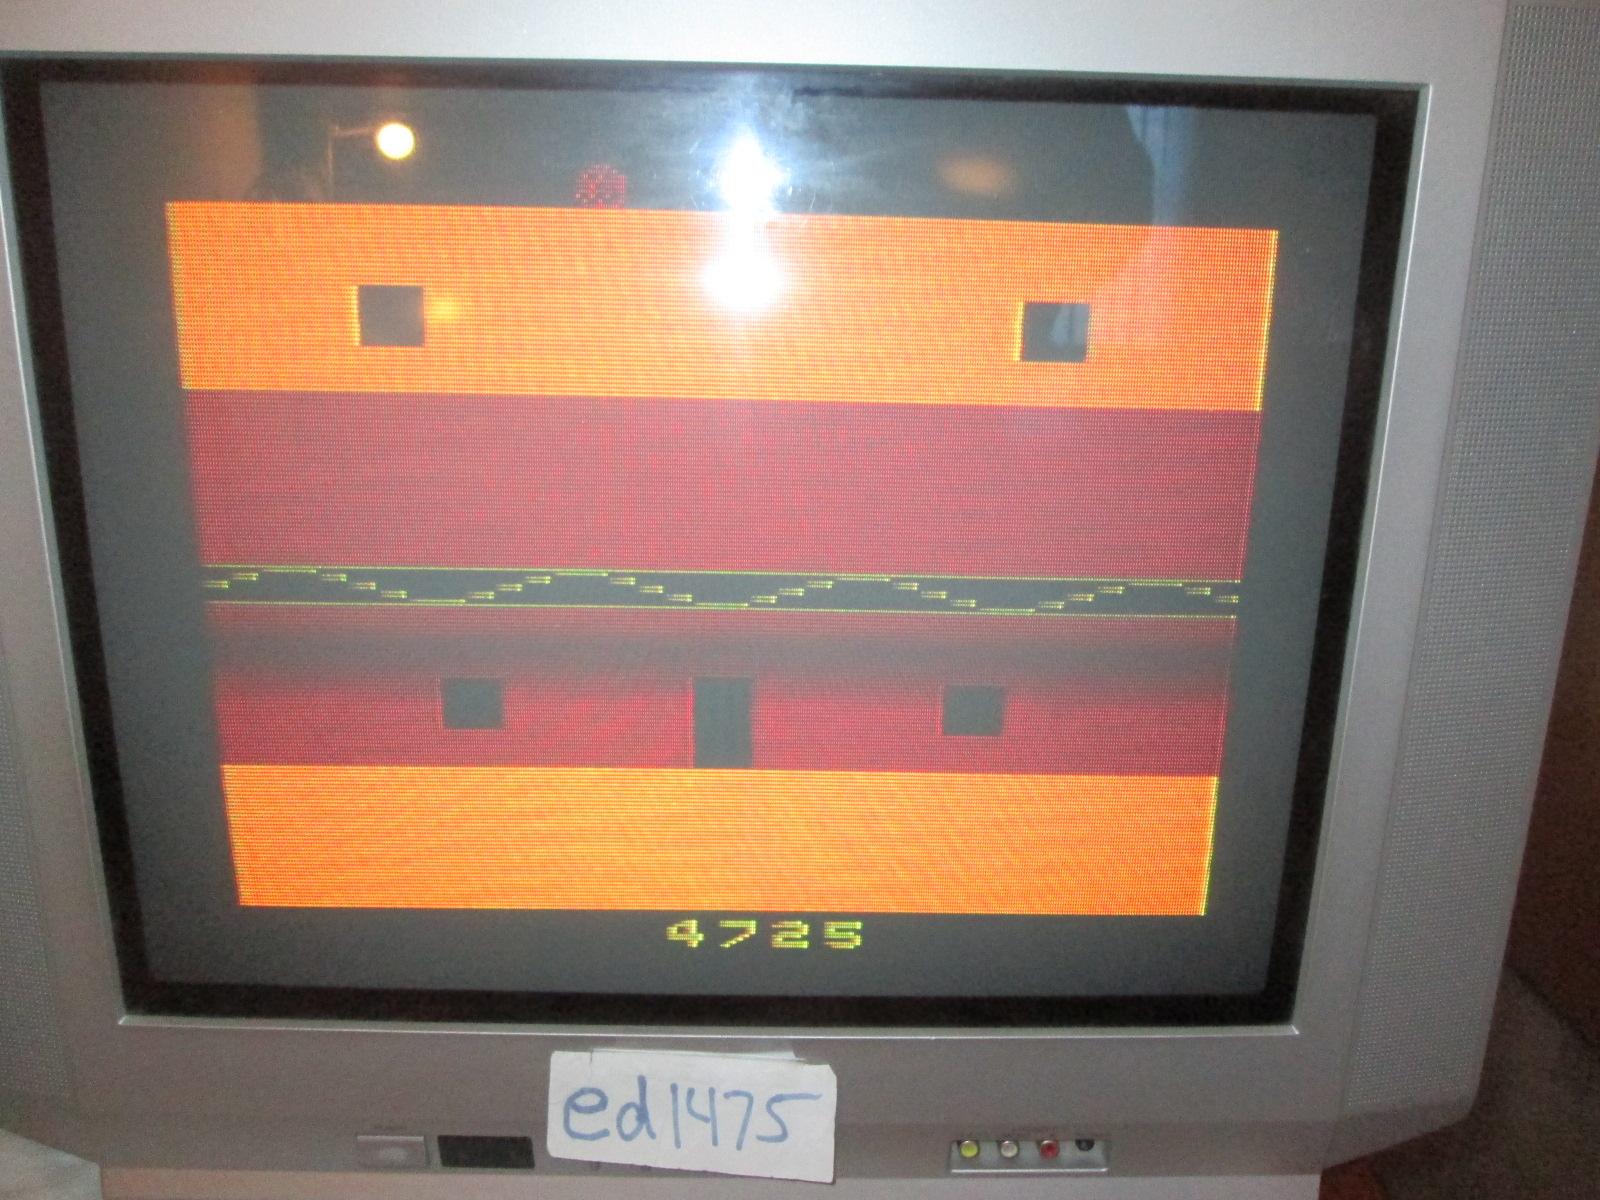 ed1475: Halloween (Atari 2600) 4,725 points on 2016-10-28 18:38:52